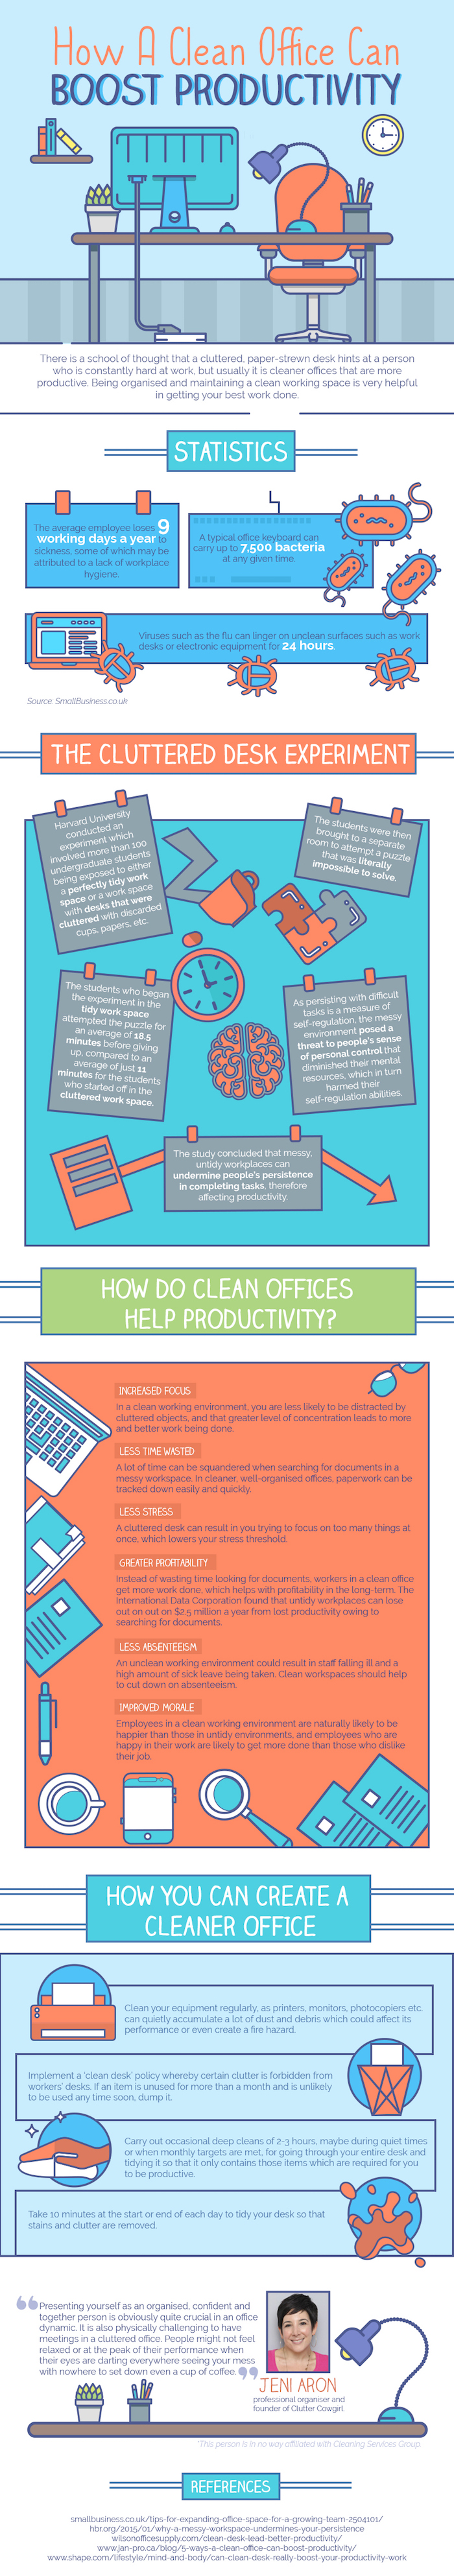 How a Clean Office Helps Productivity